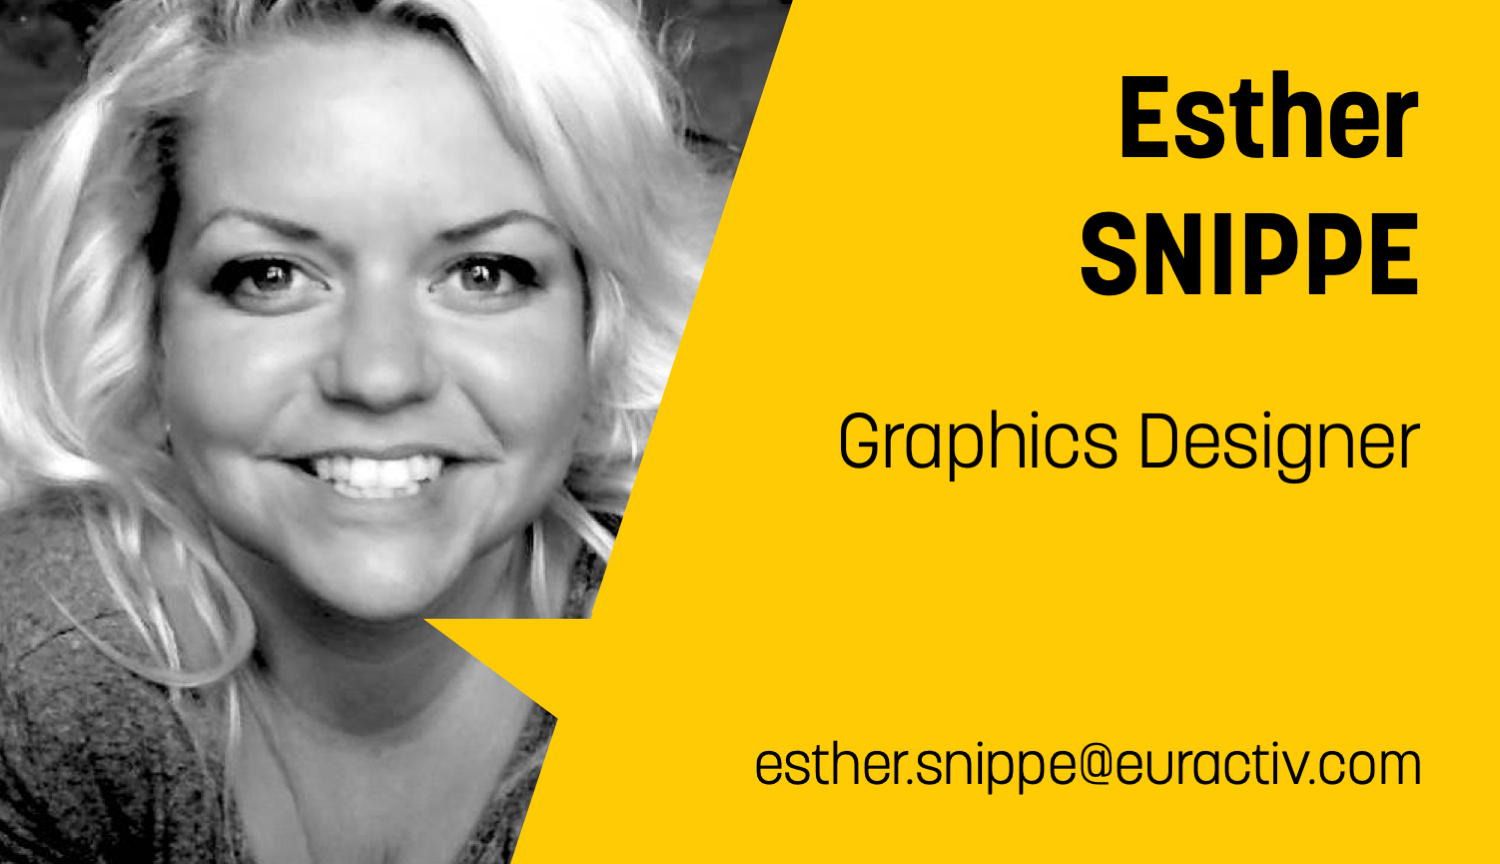 Esther Snippe